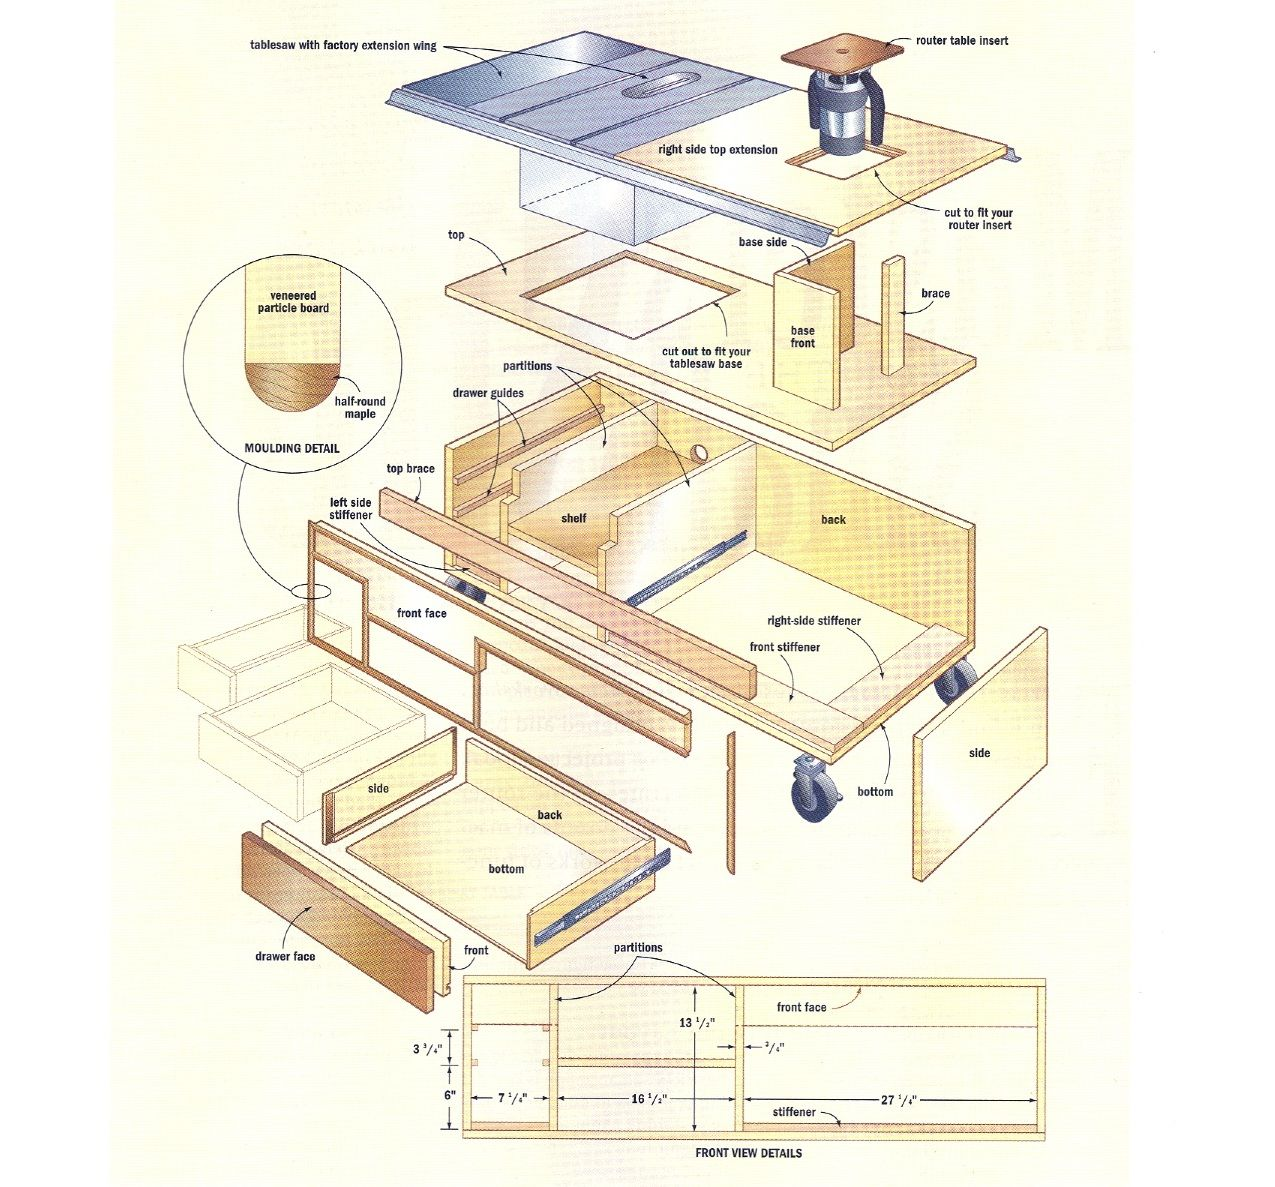 Best Kitchen Gallery: Table Saw Cabi Plans Tablesaw And Router Workstation of Base Table Saw Cabinet Plan on rachelxblog.com